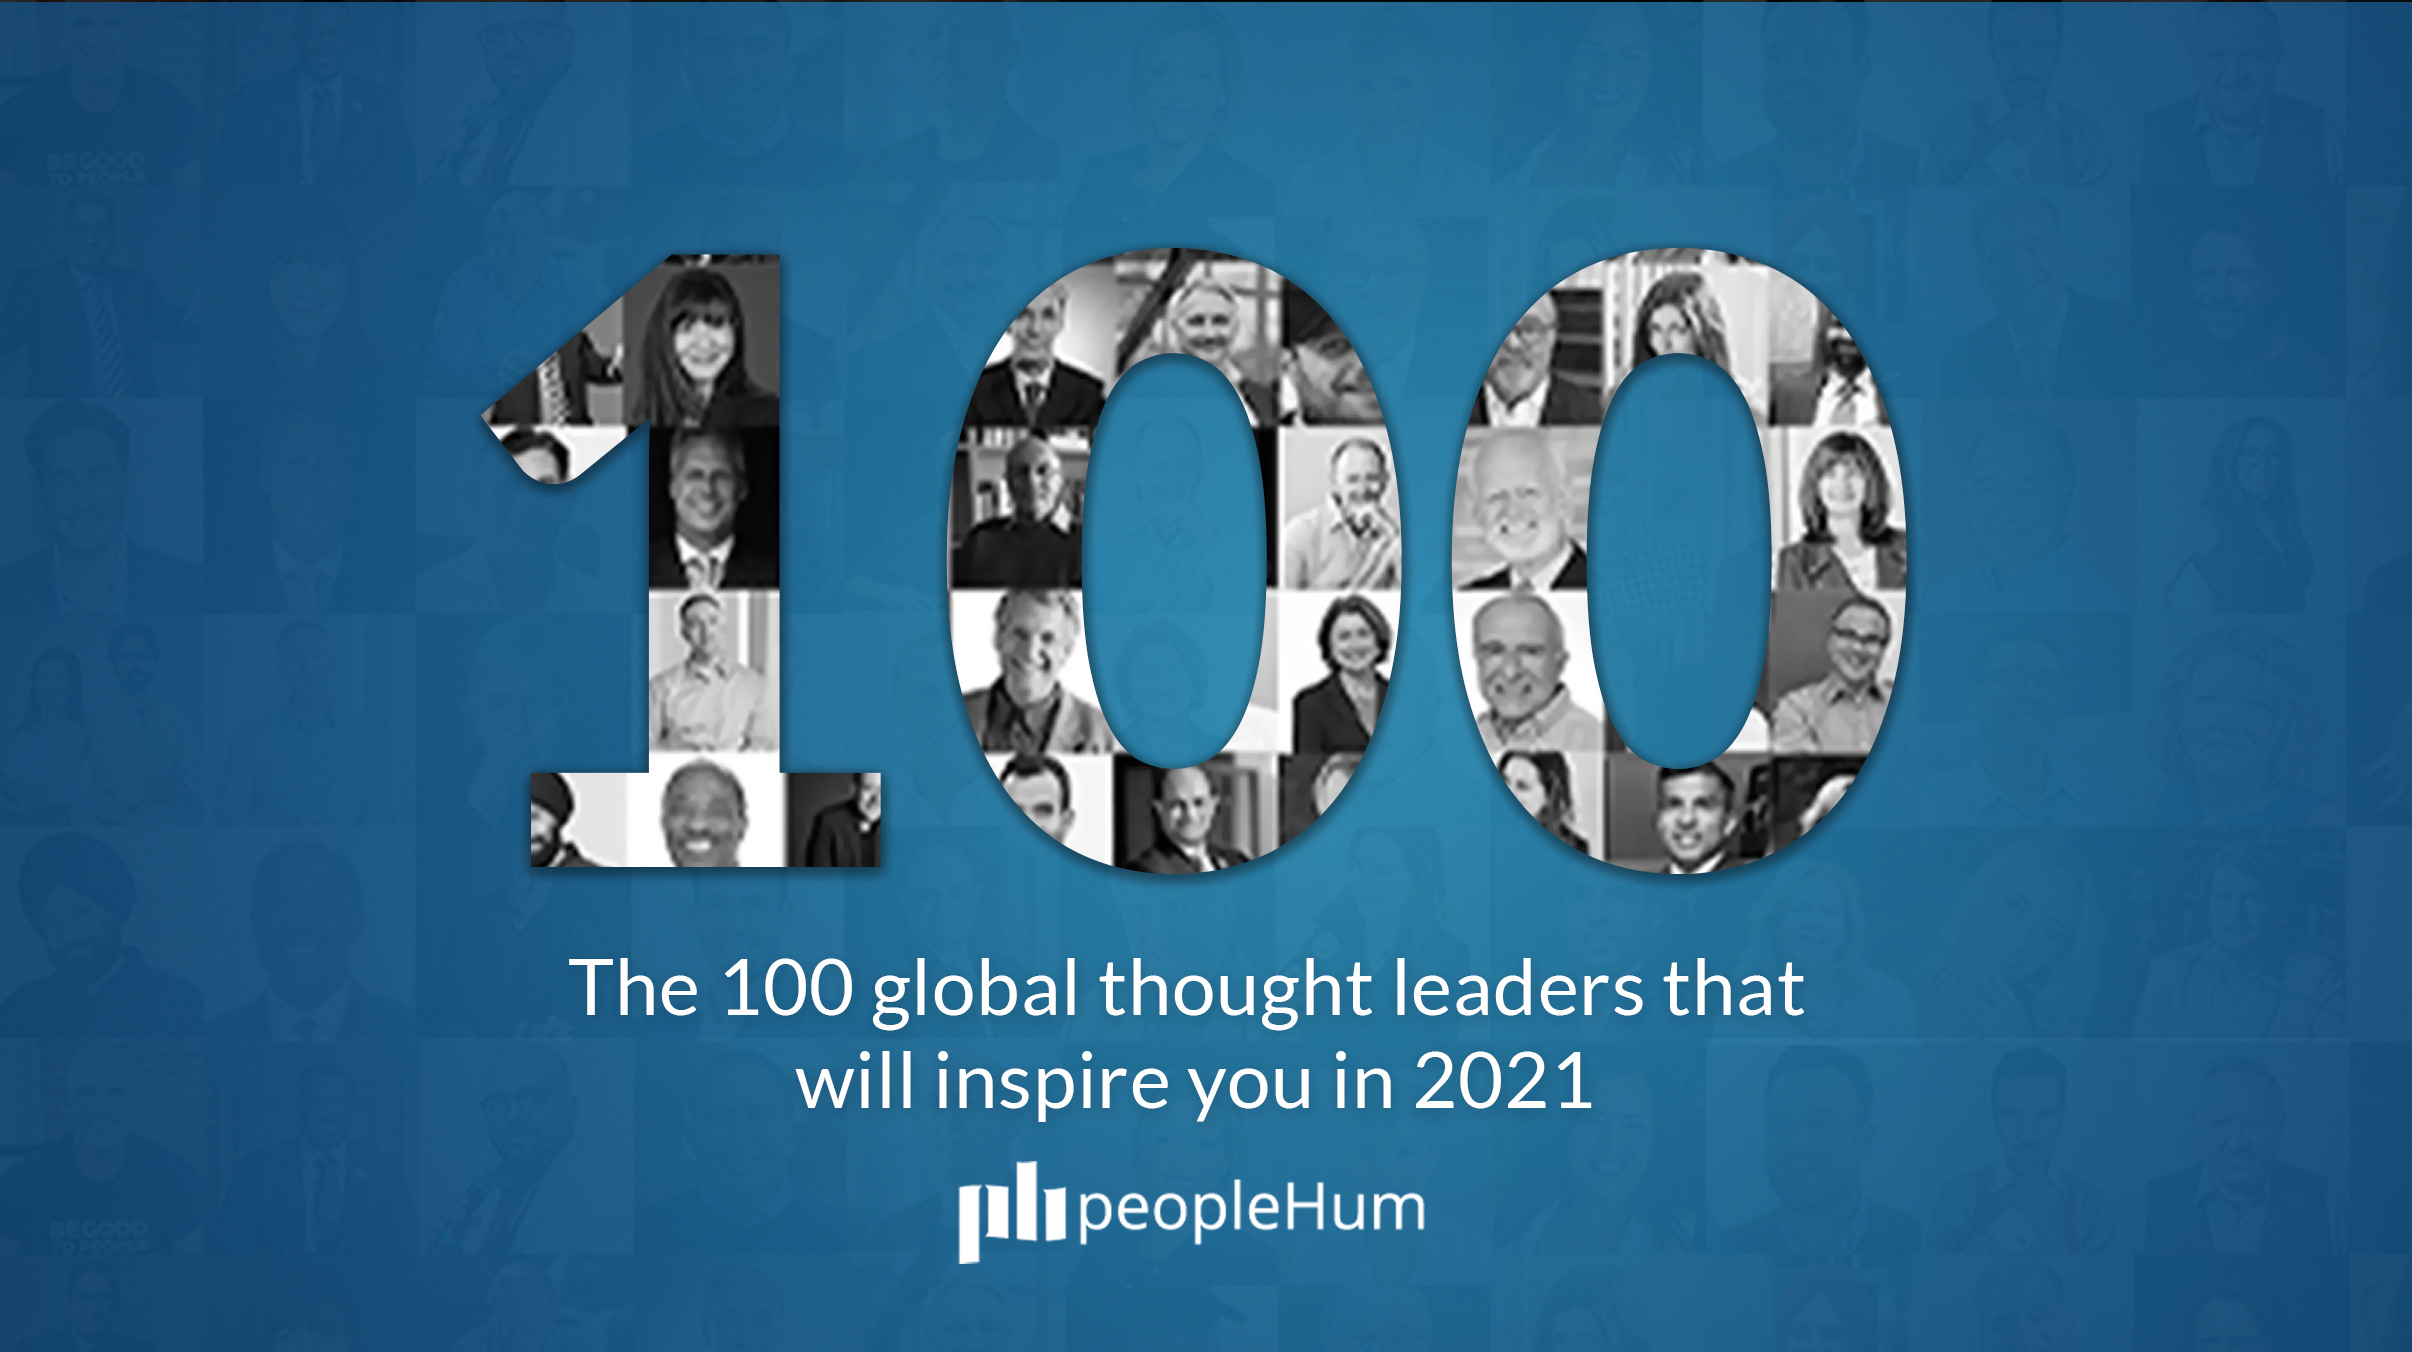 The 100 global thought leaders that will inspire you in 2021